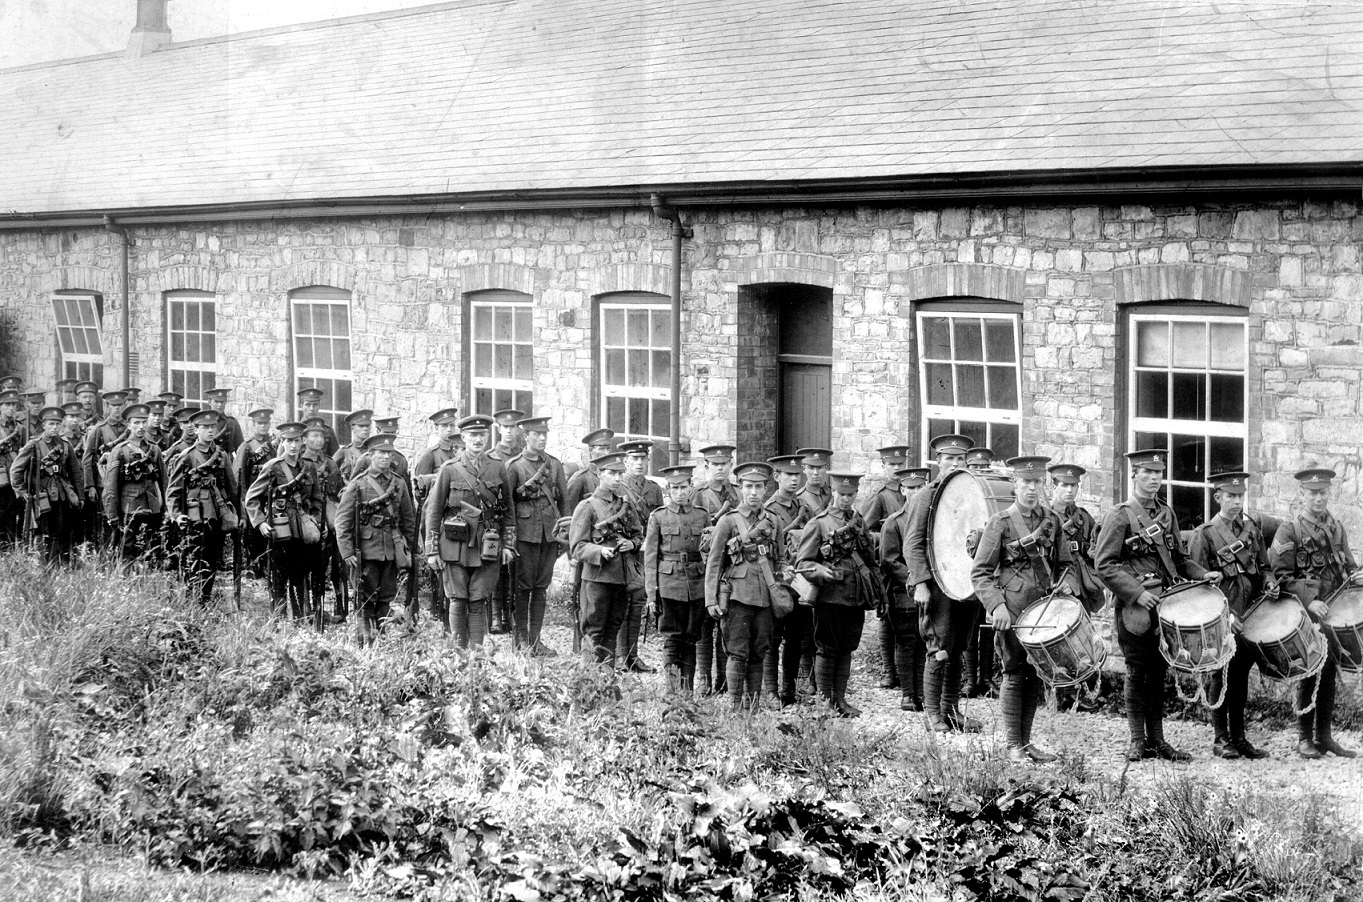 Captain C.A. Evill with his men of the 1st Battalion, the Monmouthshire Regiment, E Company.